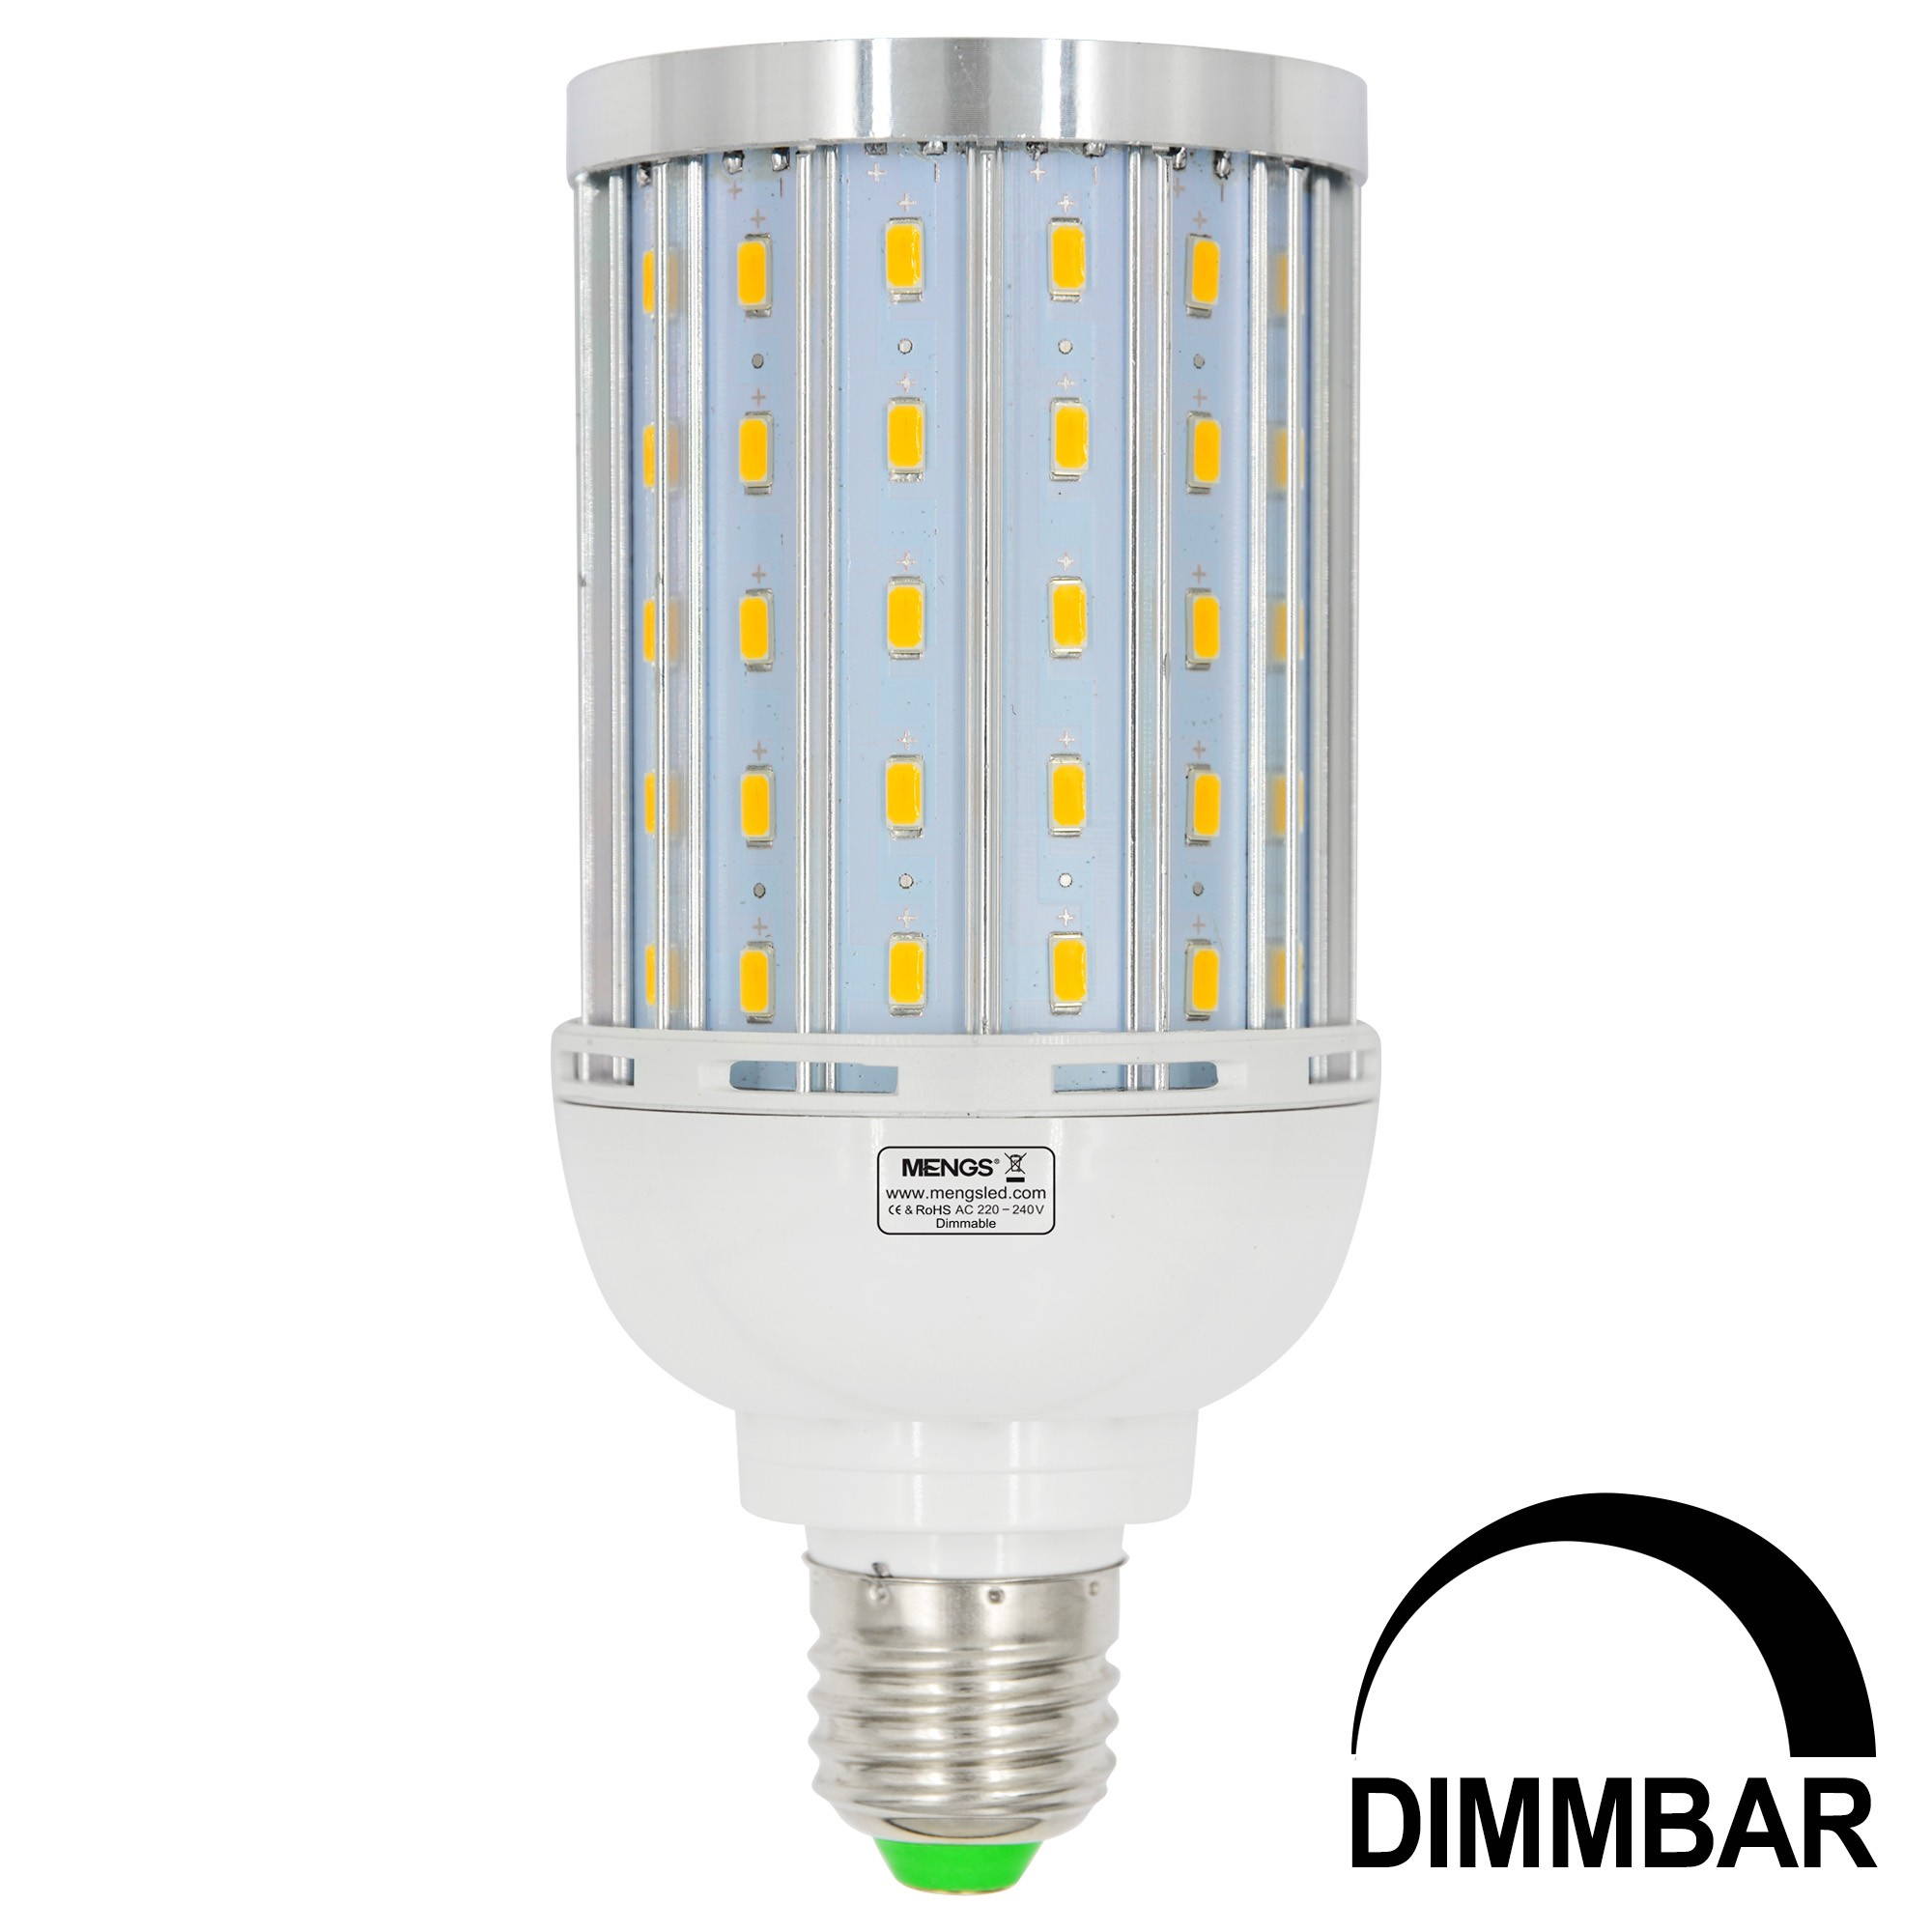 Mengsled Mengs E27 25w Led Dimmable Corn Light 85x 5730 Smd Led Bulb Lamp With Aluminum Plate